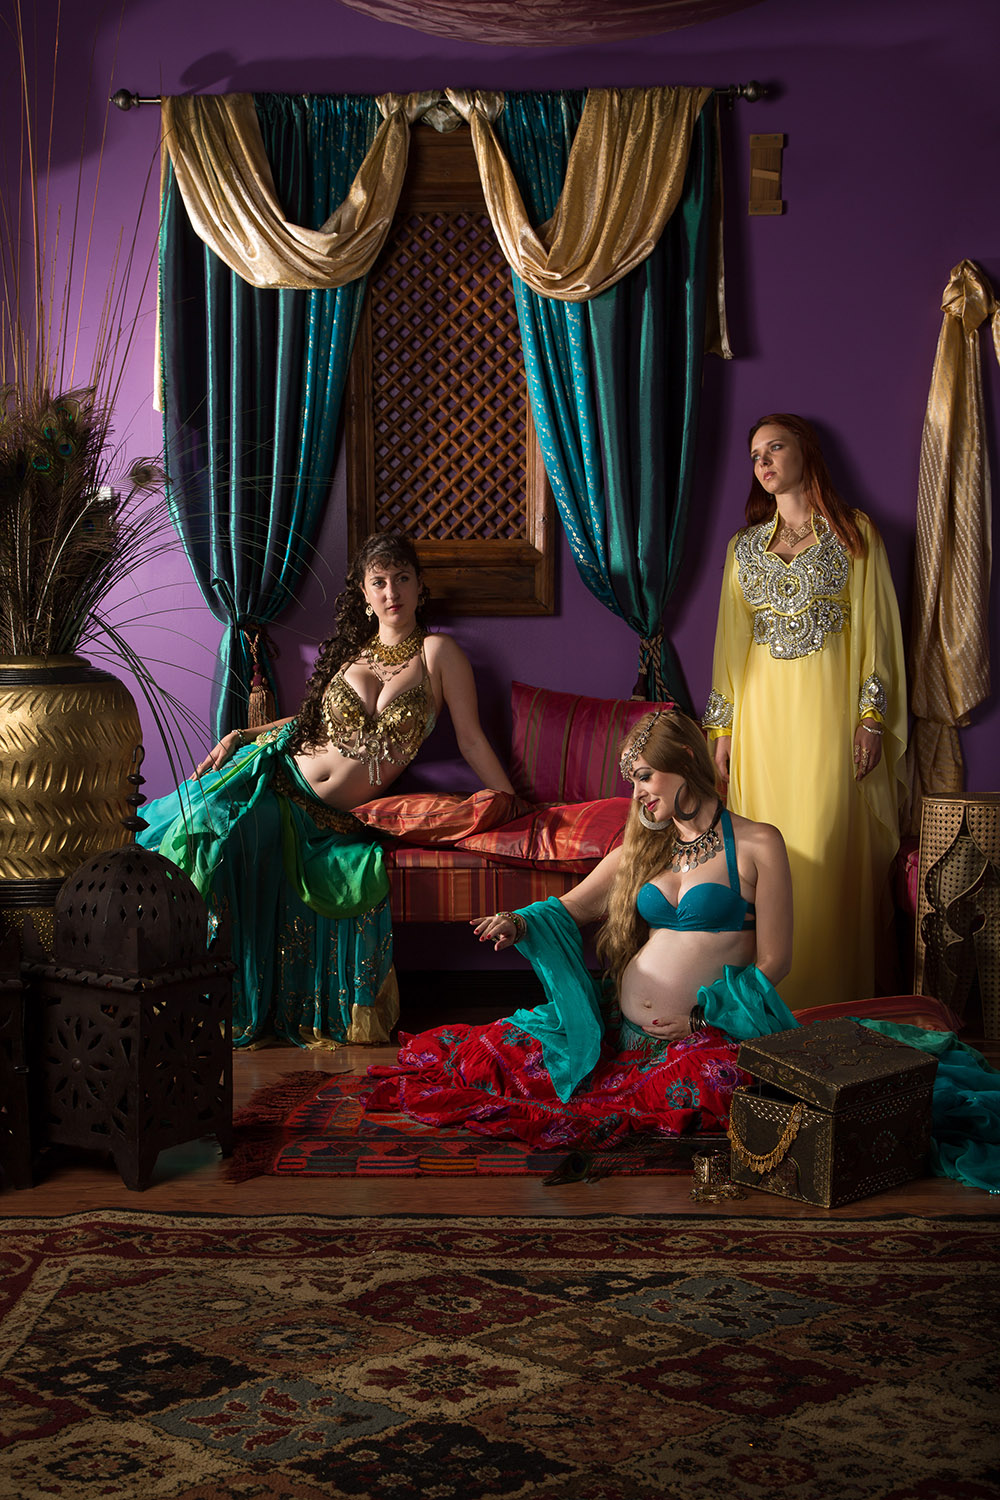 the-orientalist-trio-1-Edit.jpg